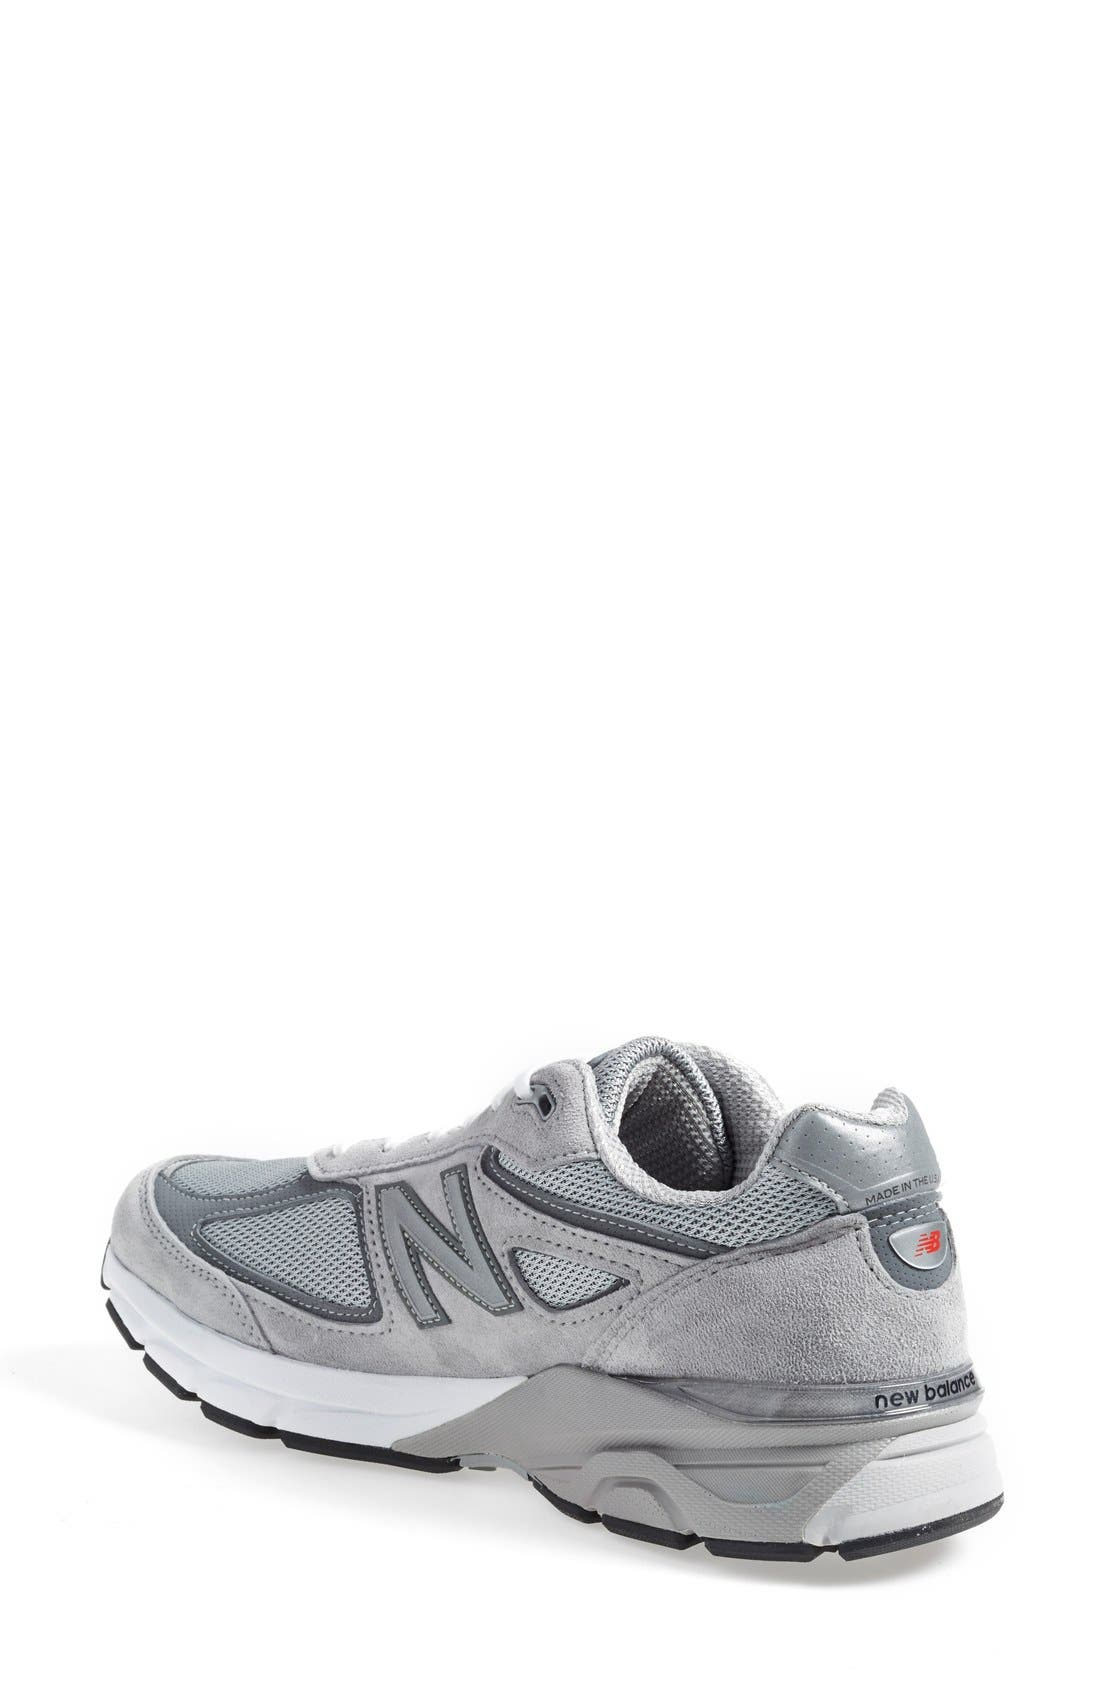 NEW BALANCE, '990' Running Shoe, Alternate thumbnail 2, color, COOL GREY